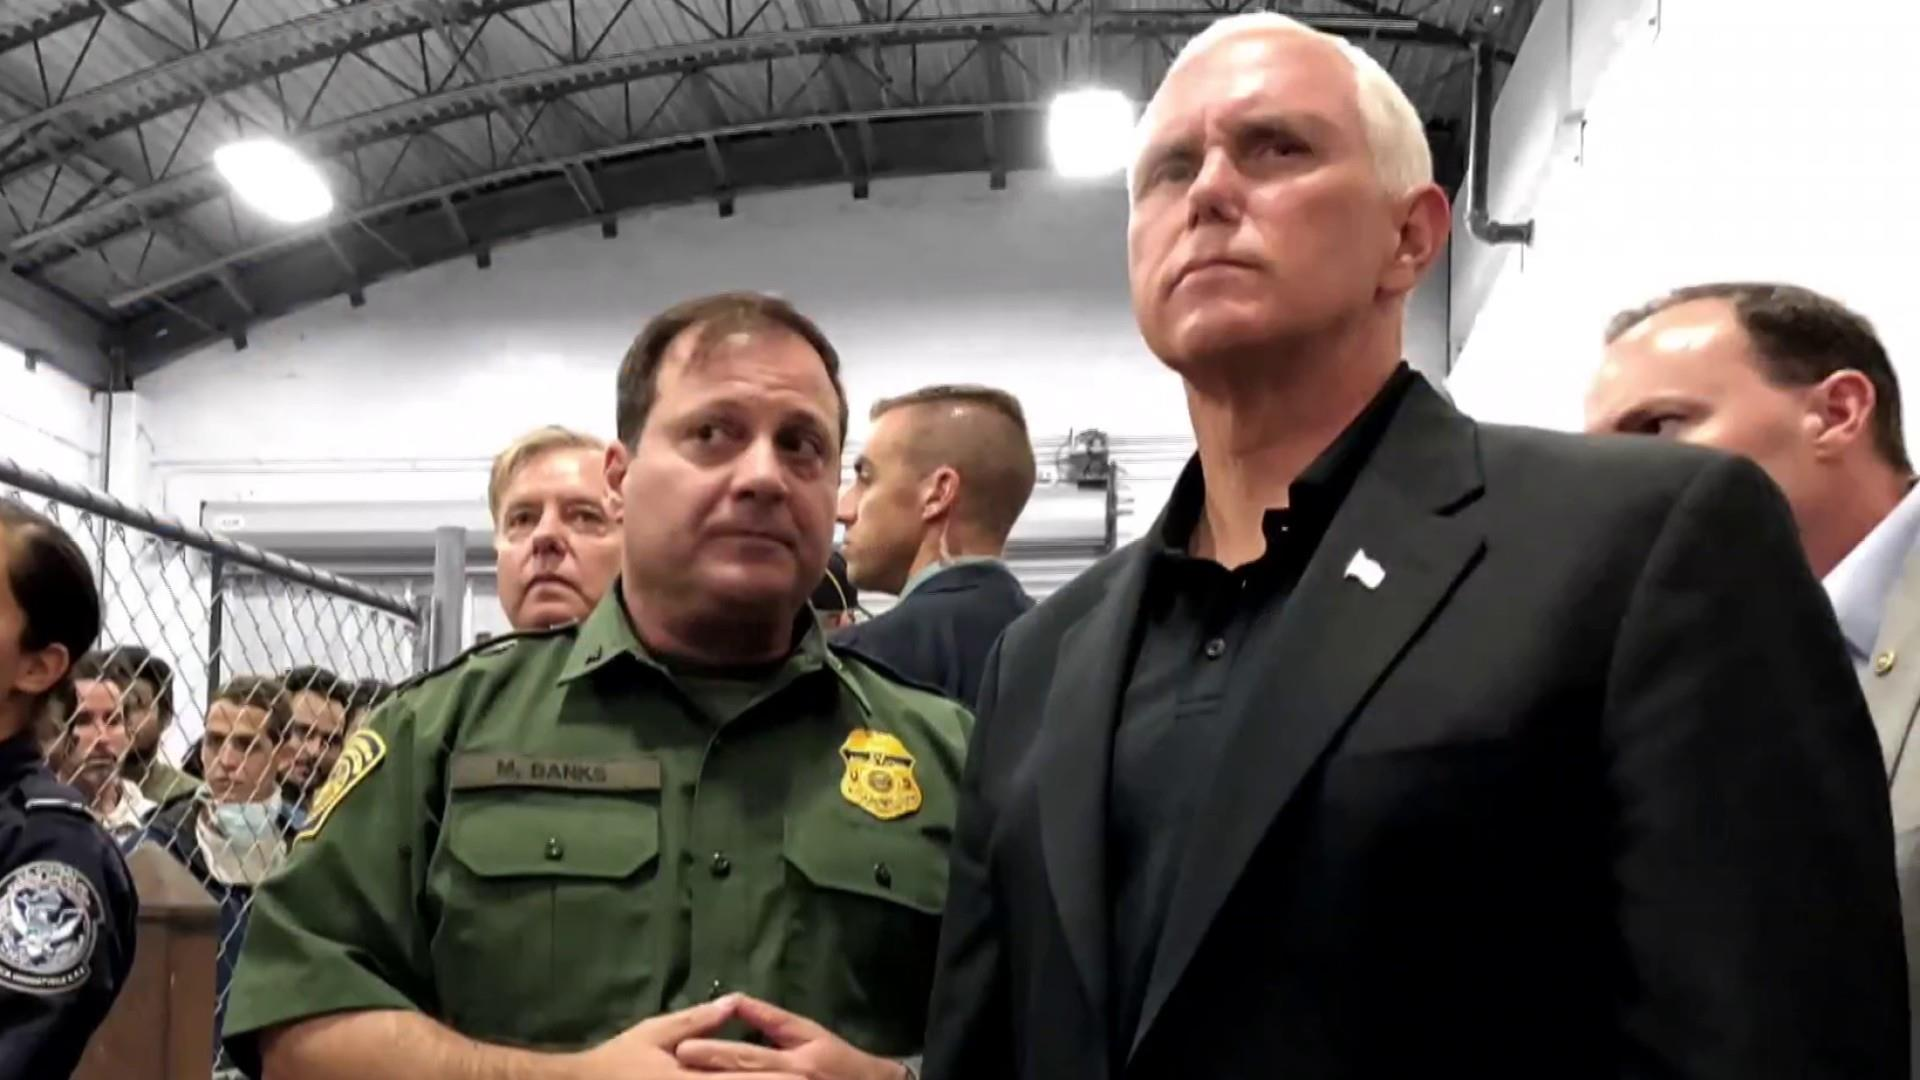 Trump's VP Pence stares blankly at nearly 400 migrants in overcrowded cages